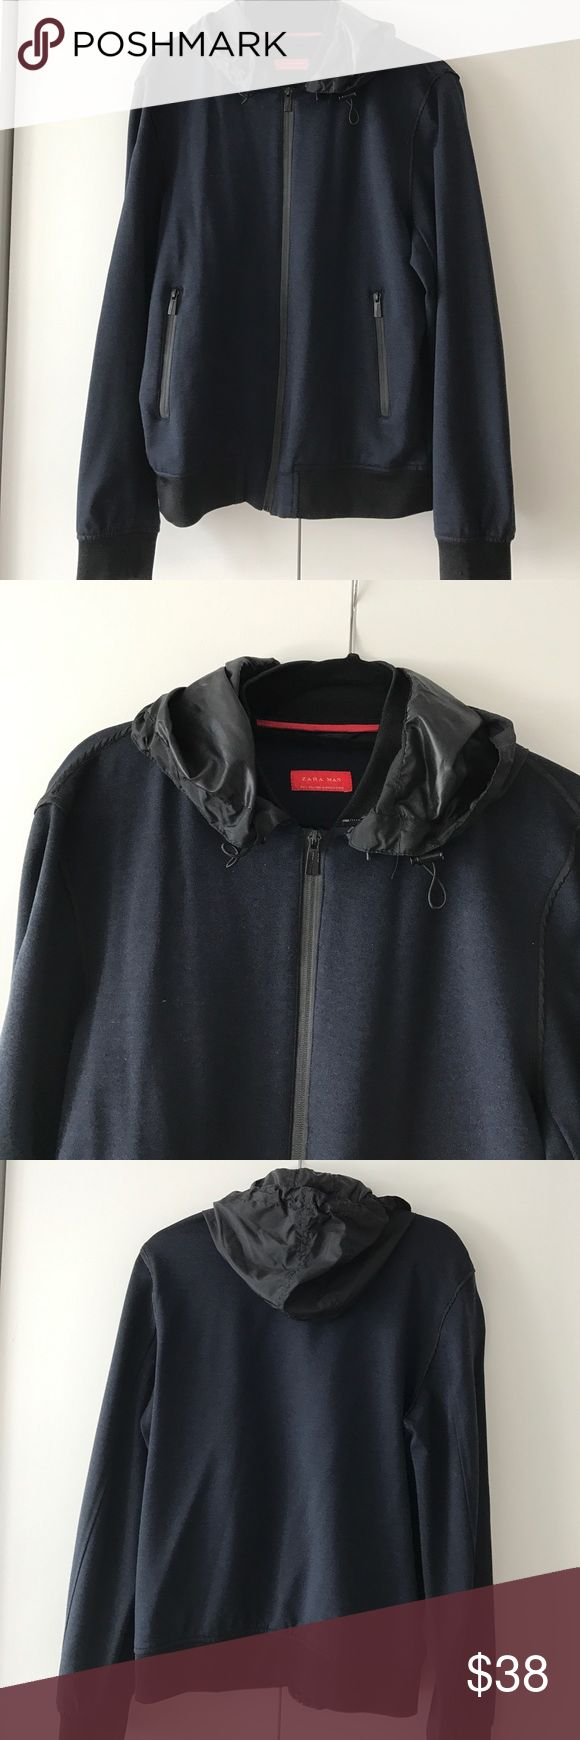 Zara Men's Zip Up Hoodie Size 40 Blue/black blue zip up hoodie with 2 front pockets removable hood Size L Zara Sweaters Zip Up